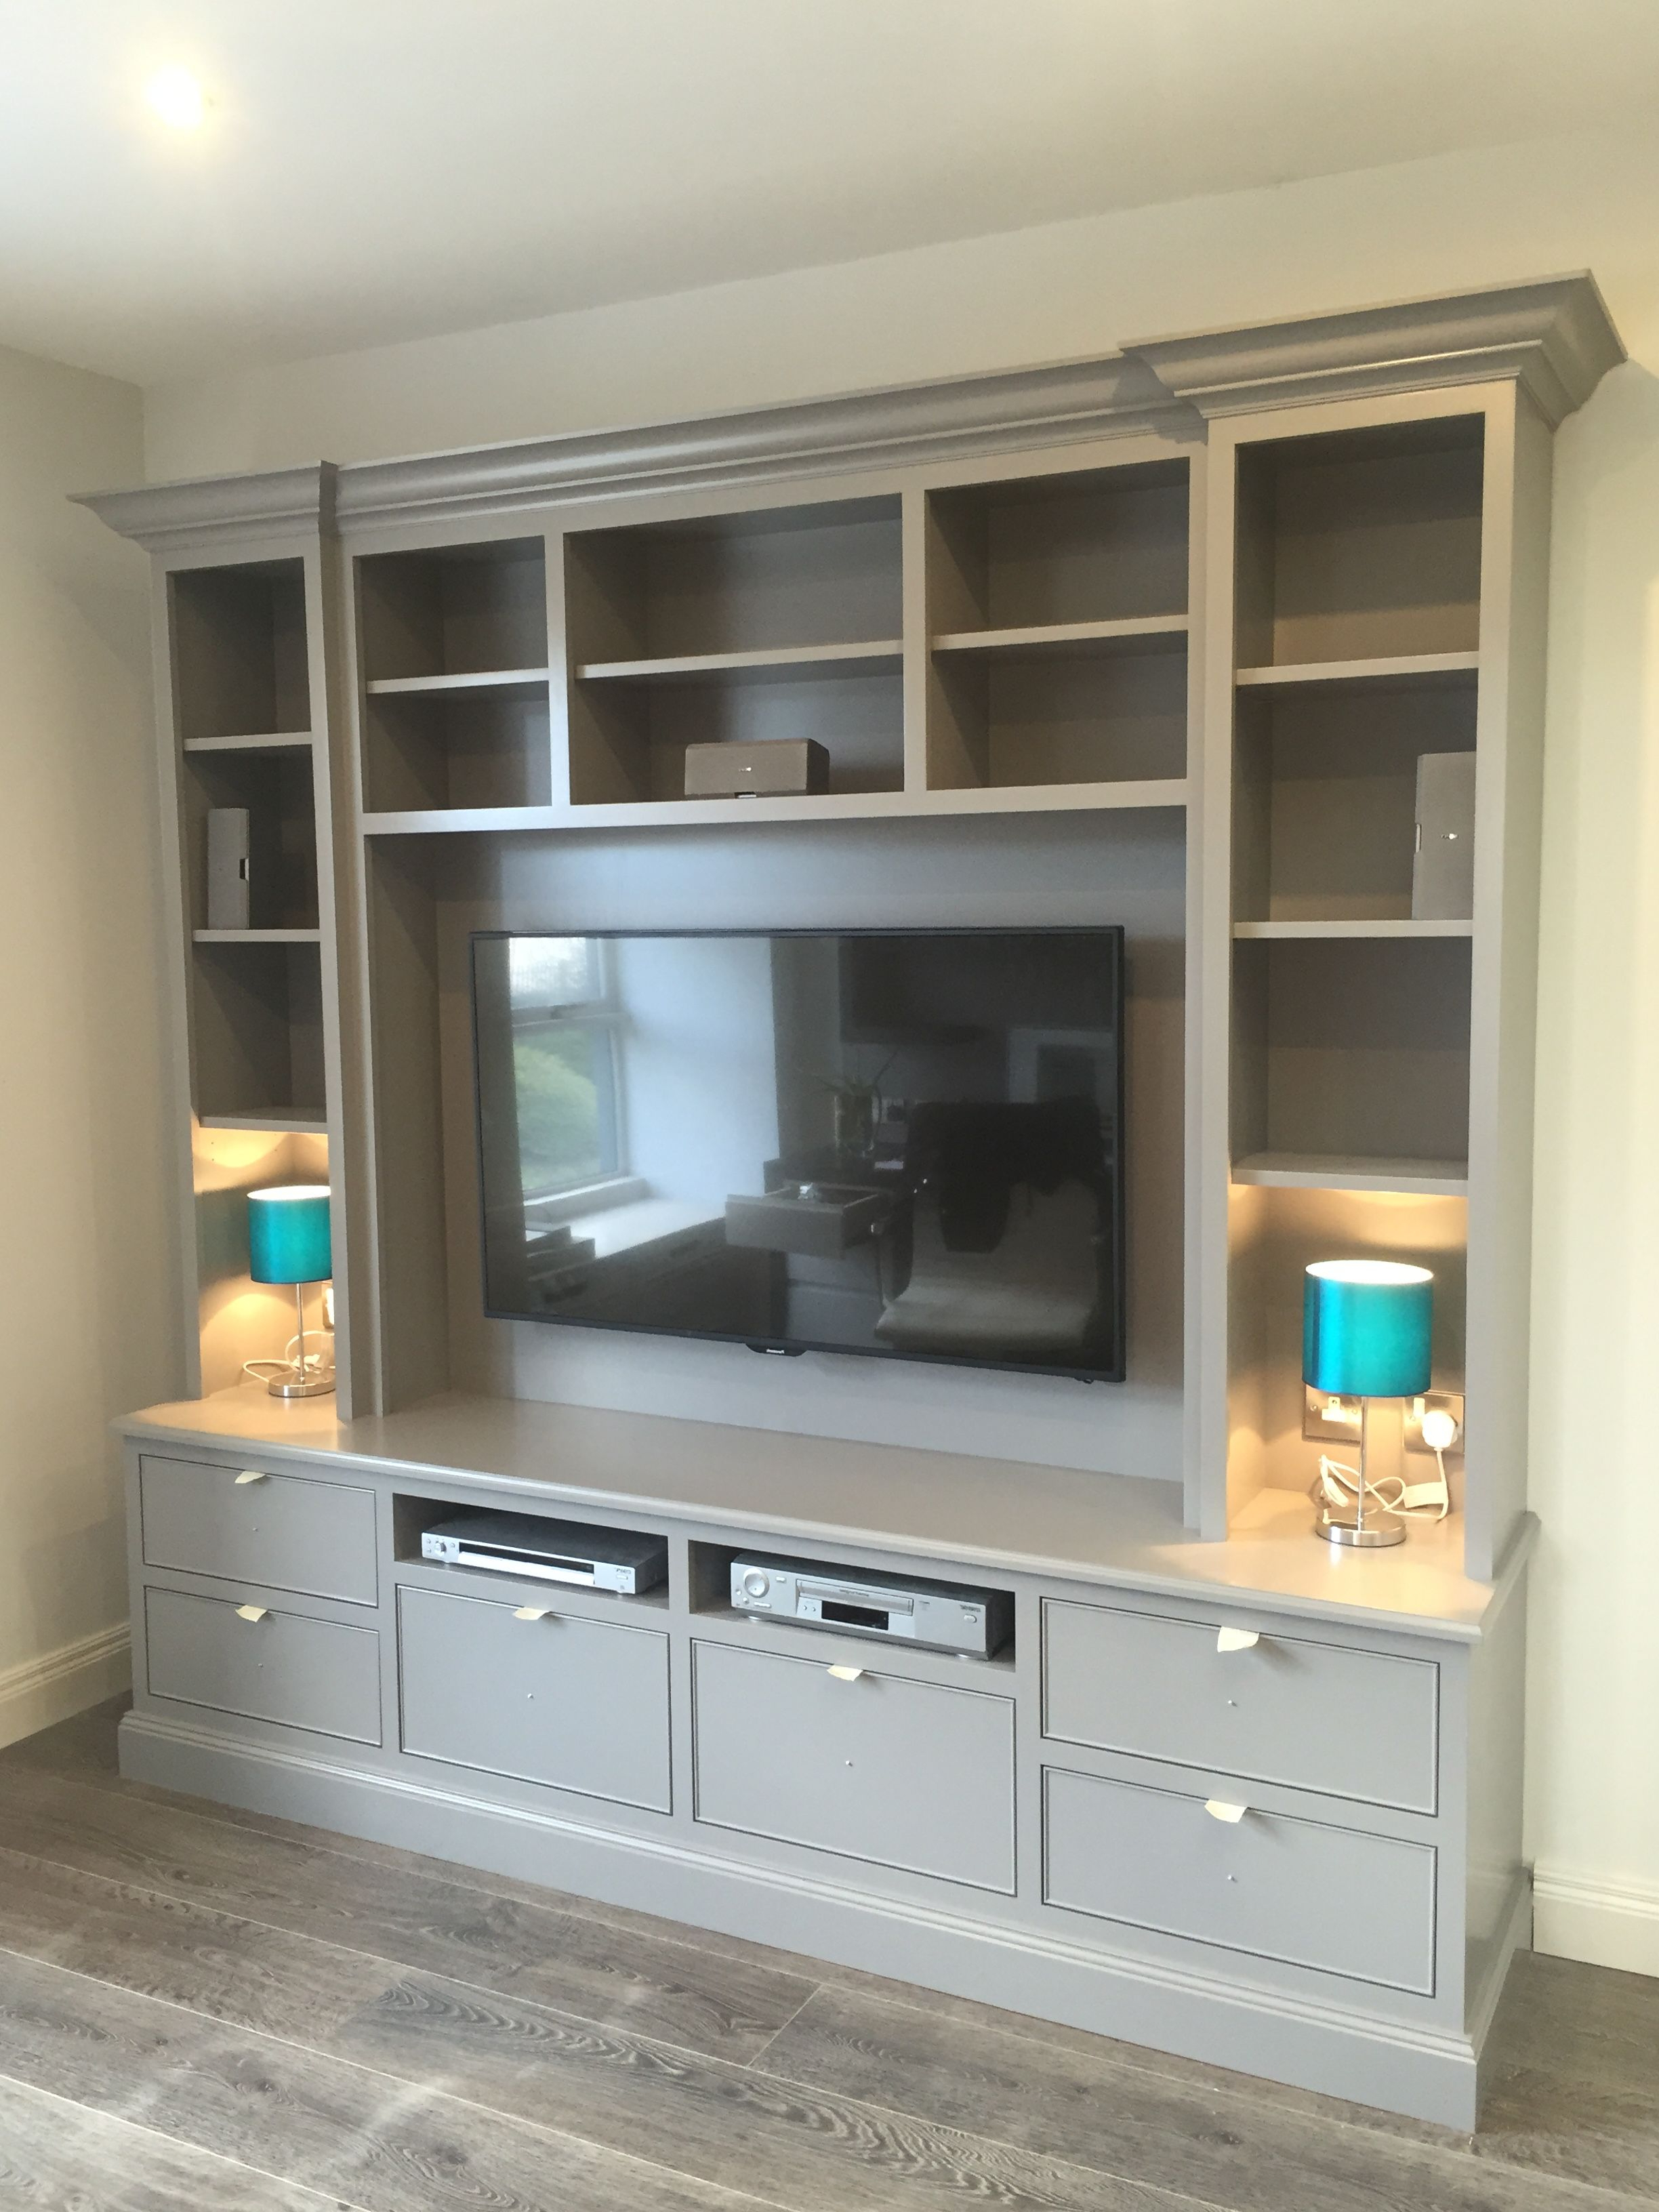 Bedroom Tv Shelves In Most Current Best 25 Bedroom Tv Stand Ideas On Pinterest (View 1 of 20)